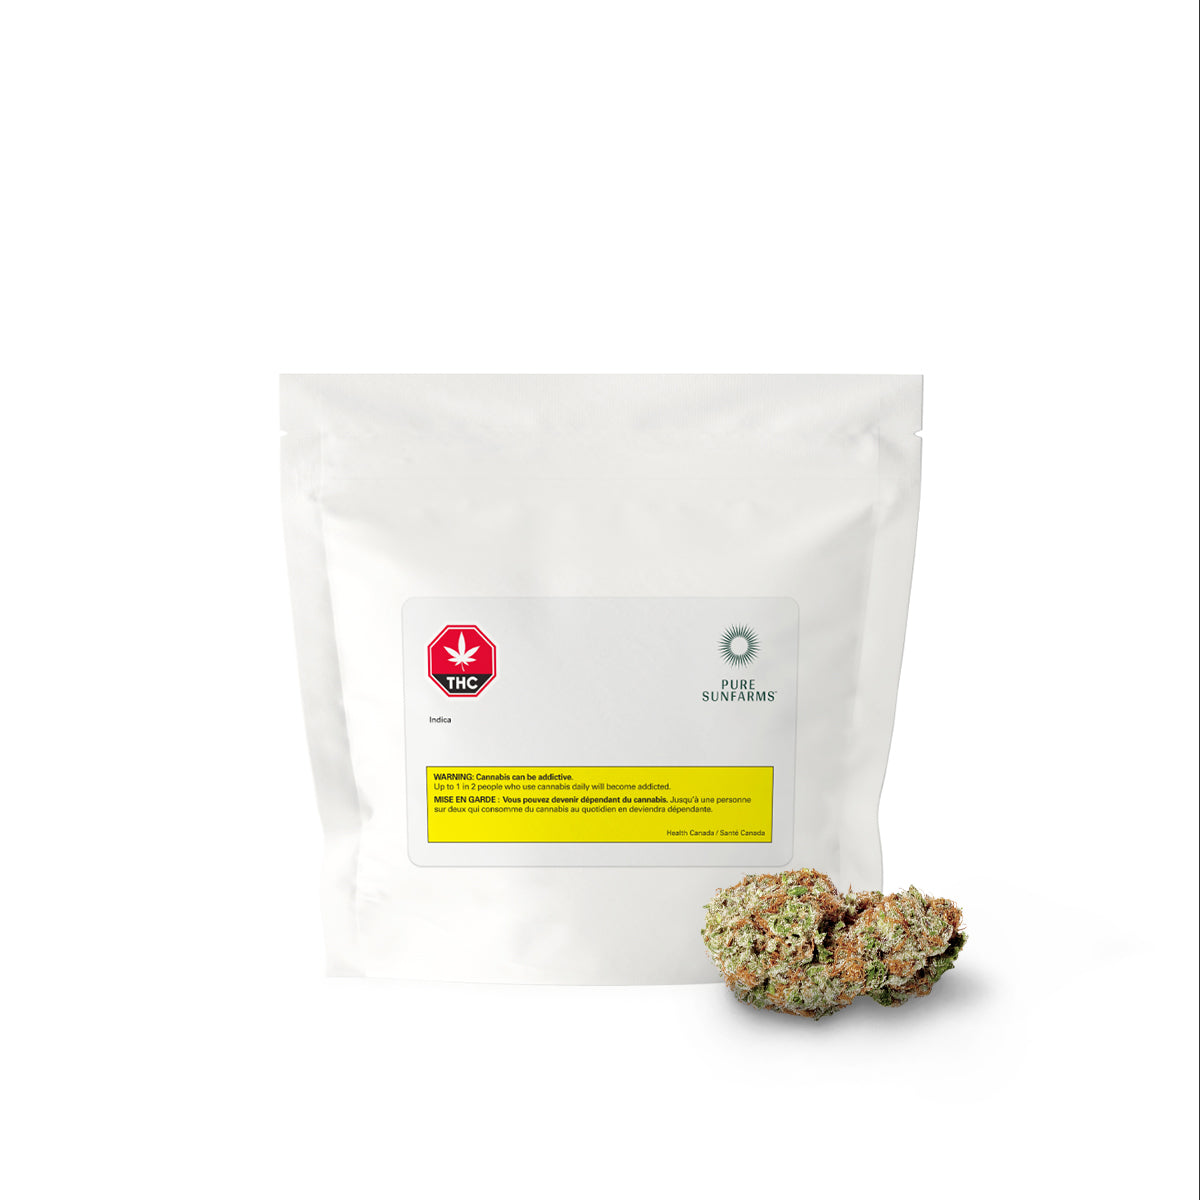 Indica Dried Cannabis